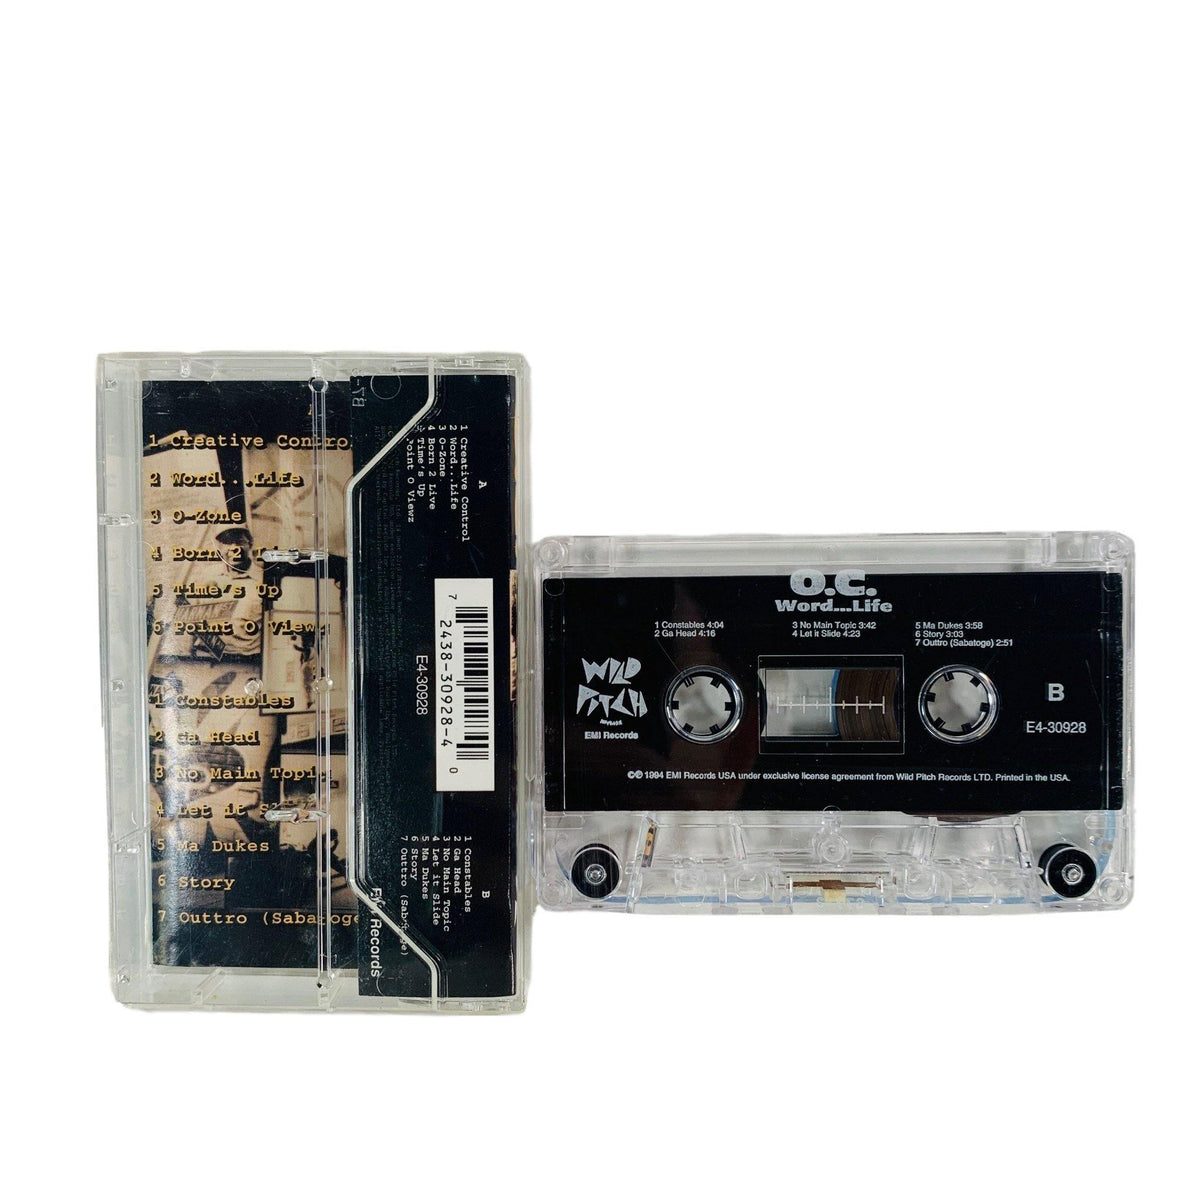 "Vintage O.C. ""Word... Life"" Wild Pitch Records Tape - jointcustodydc"